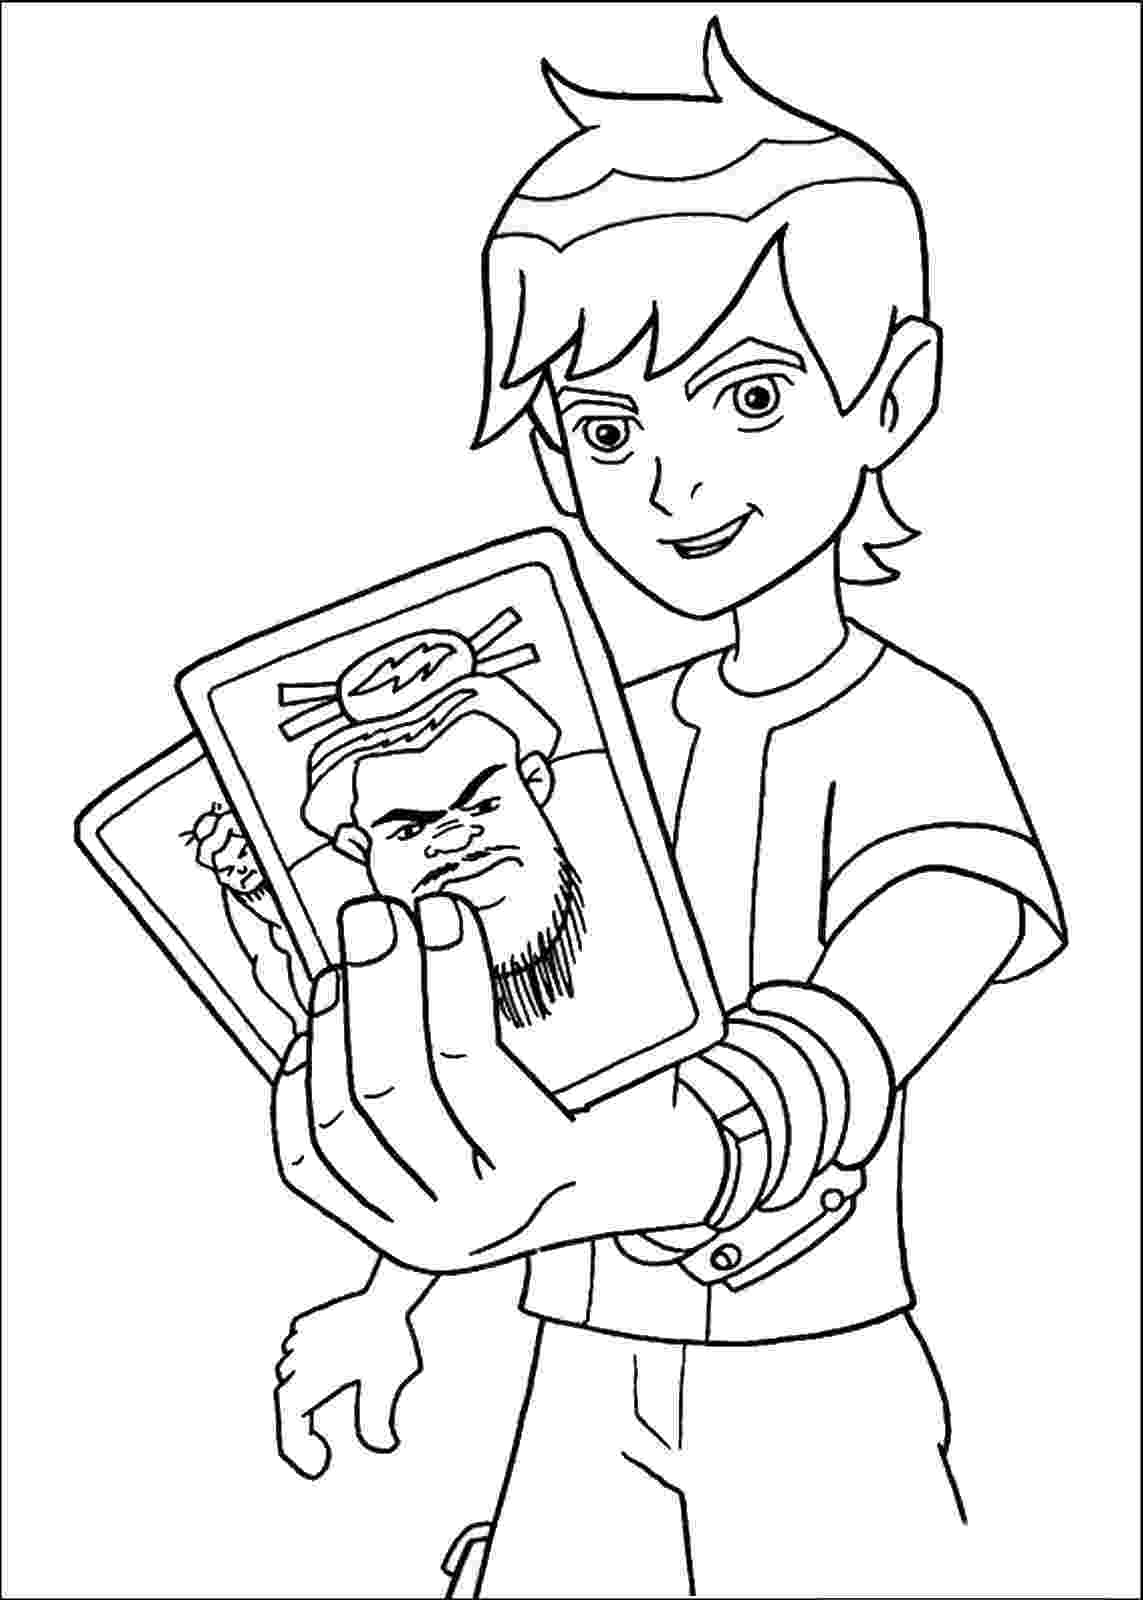 ben10 colouring ben 10 wildvine coloring page free printable coloring pages ben10 colouring